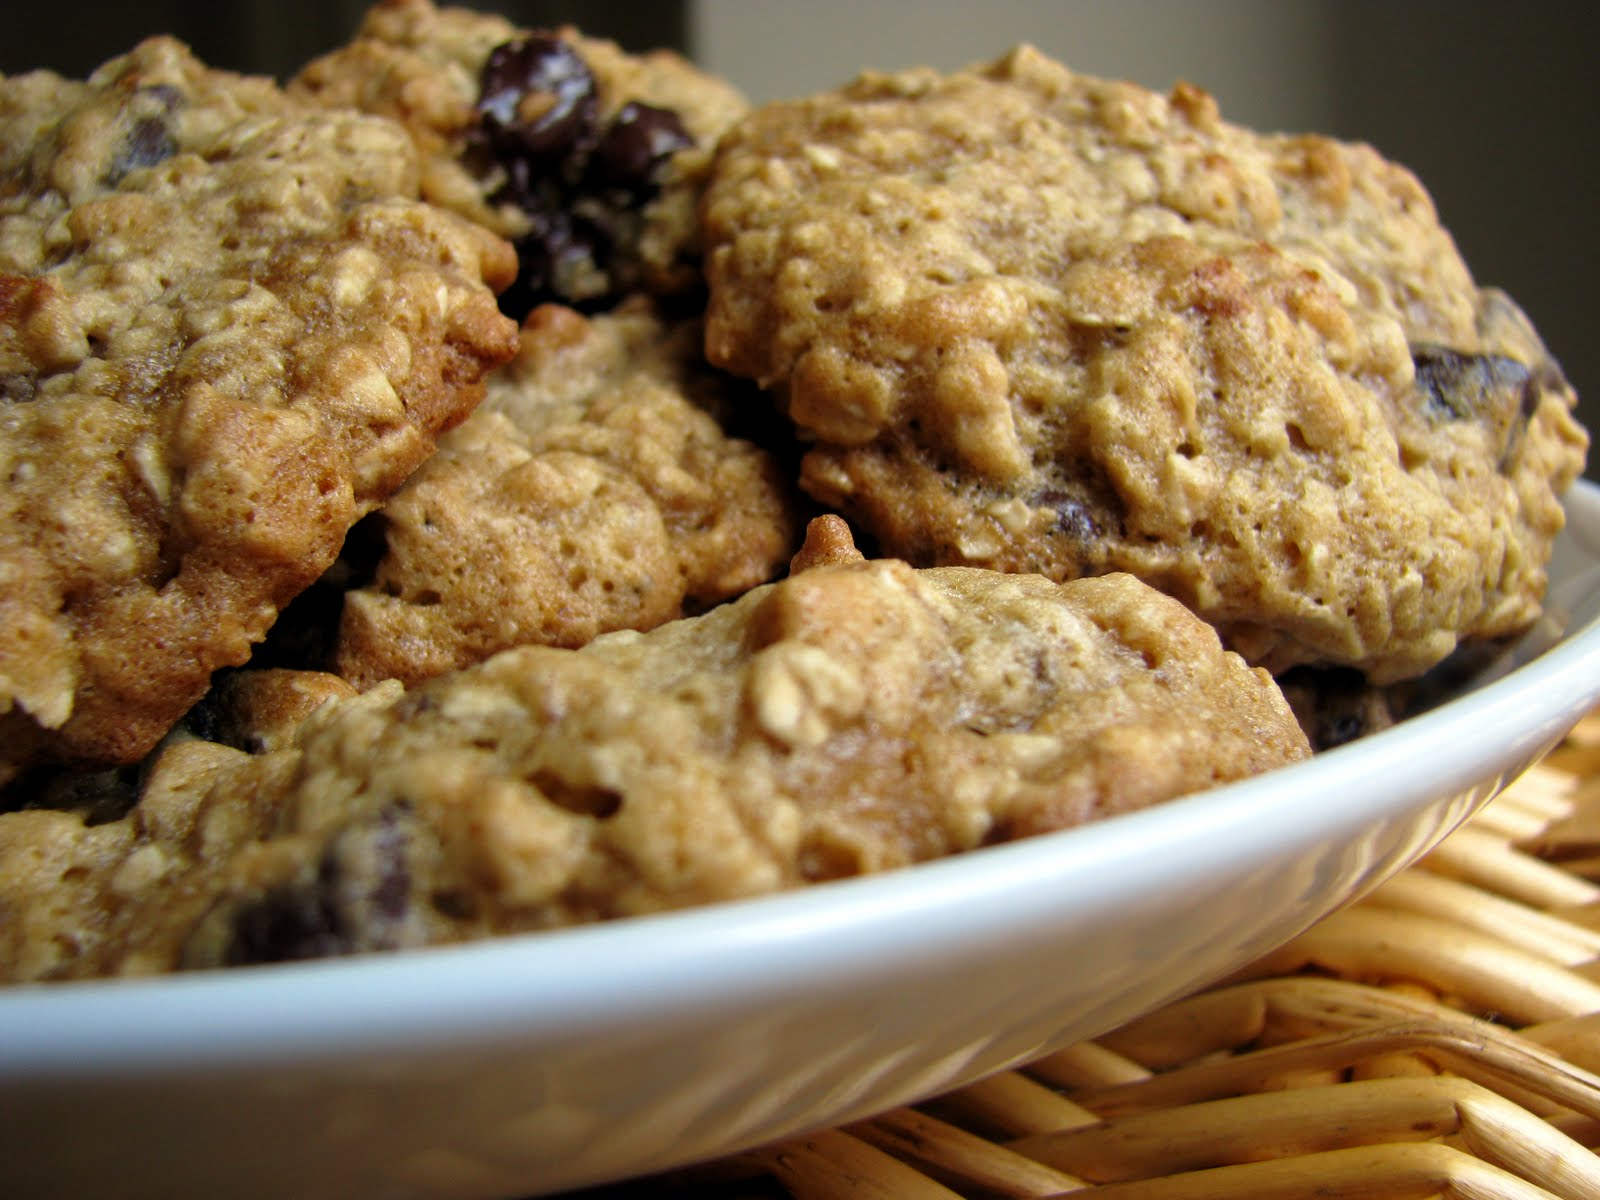 Low fat oatmeal chocolate chip cookies recipe dishmaps for Low fat chocolate biscuits